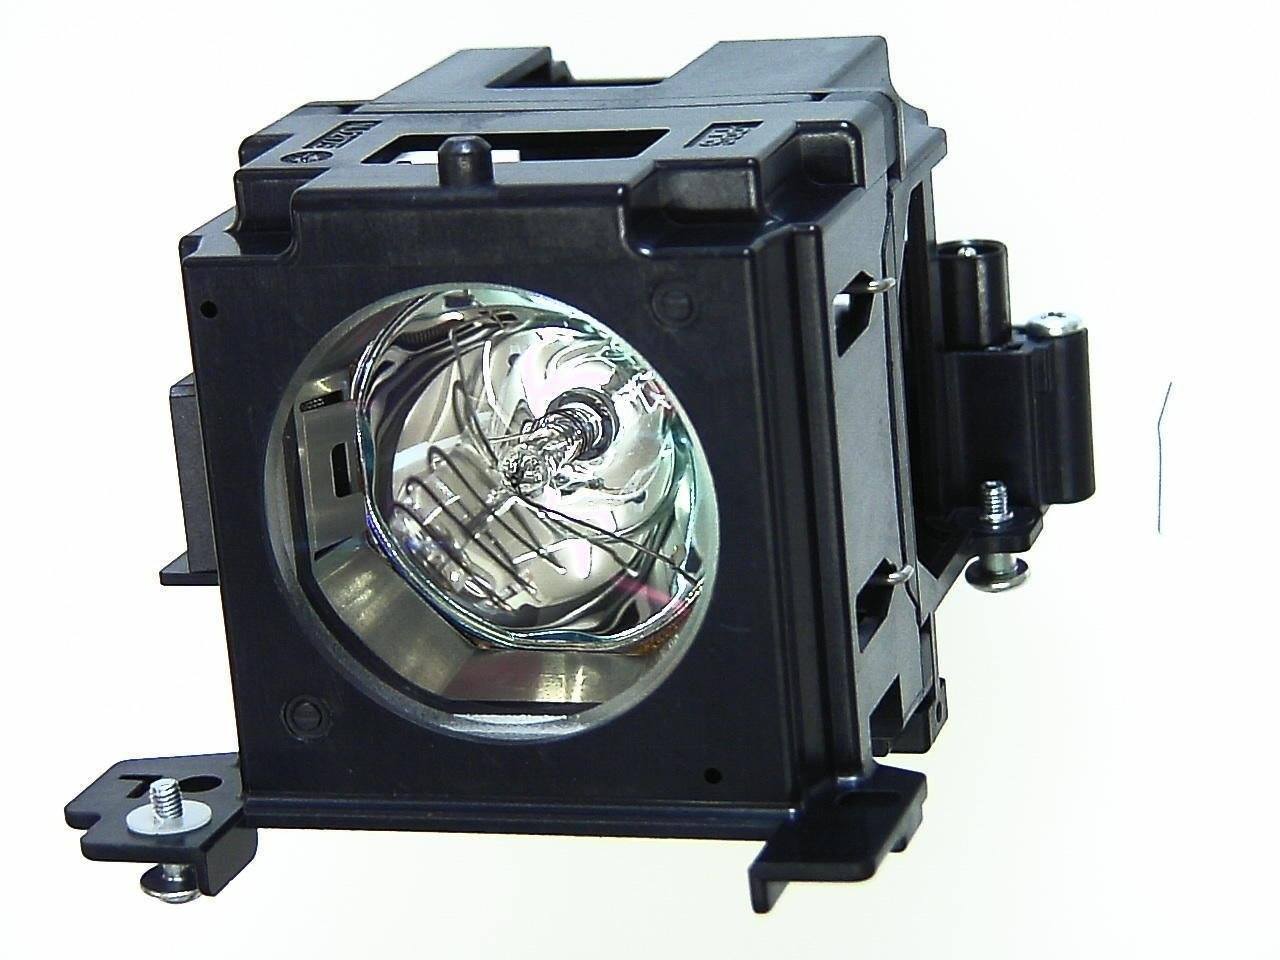 DT01281 DT-01281 for HITACHI CP-SX8350 CP-WUX8440 CP-WX8240 CP-X8150 Projector Lamp Bulb with housing амортизаторы кони 8240 1215 в москве